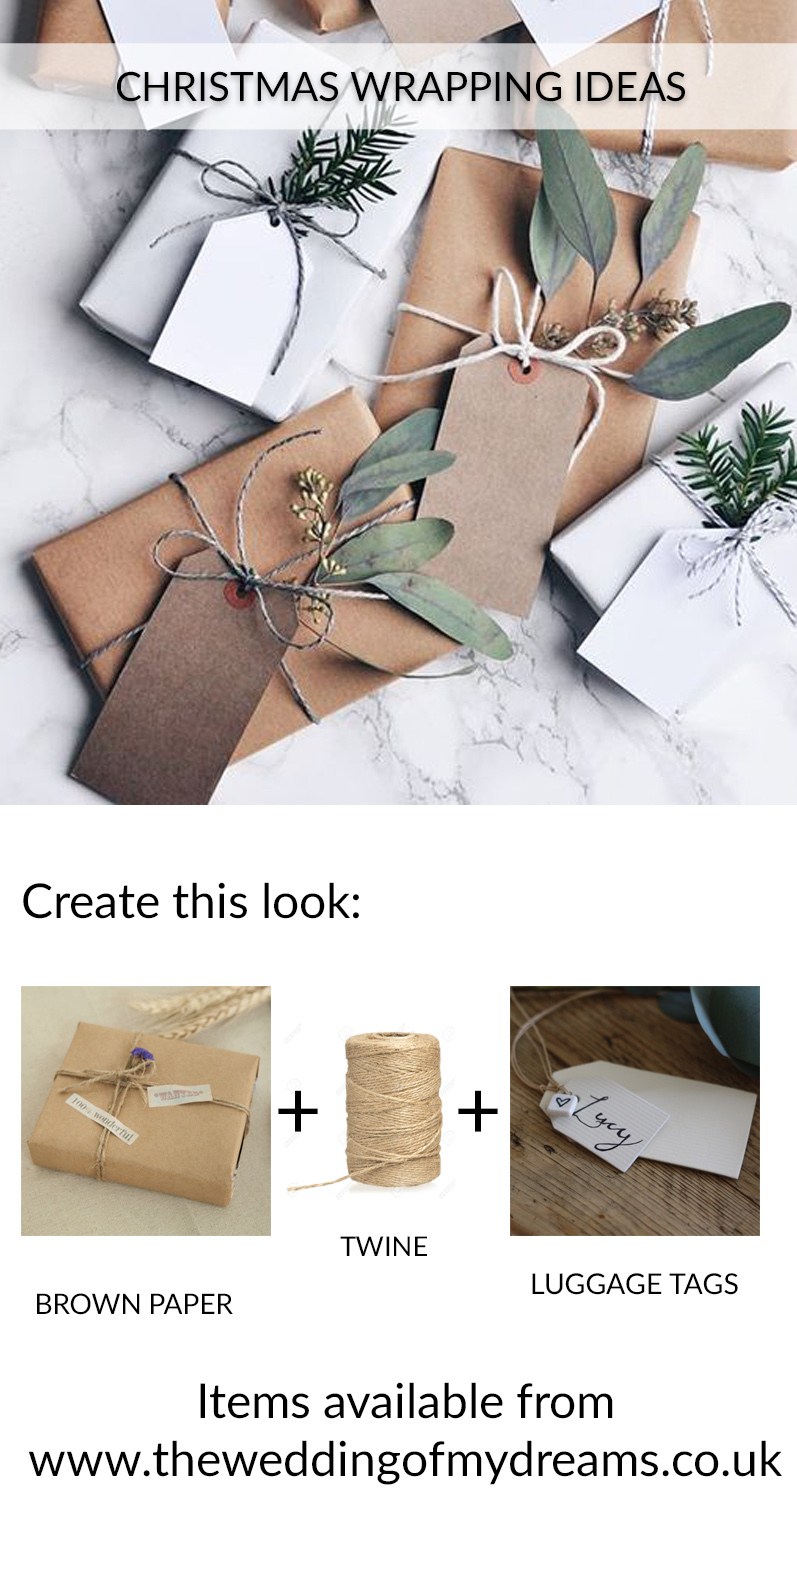 Christmas wrapping ideas shop the look